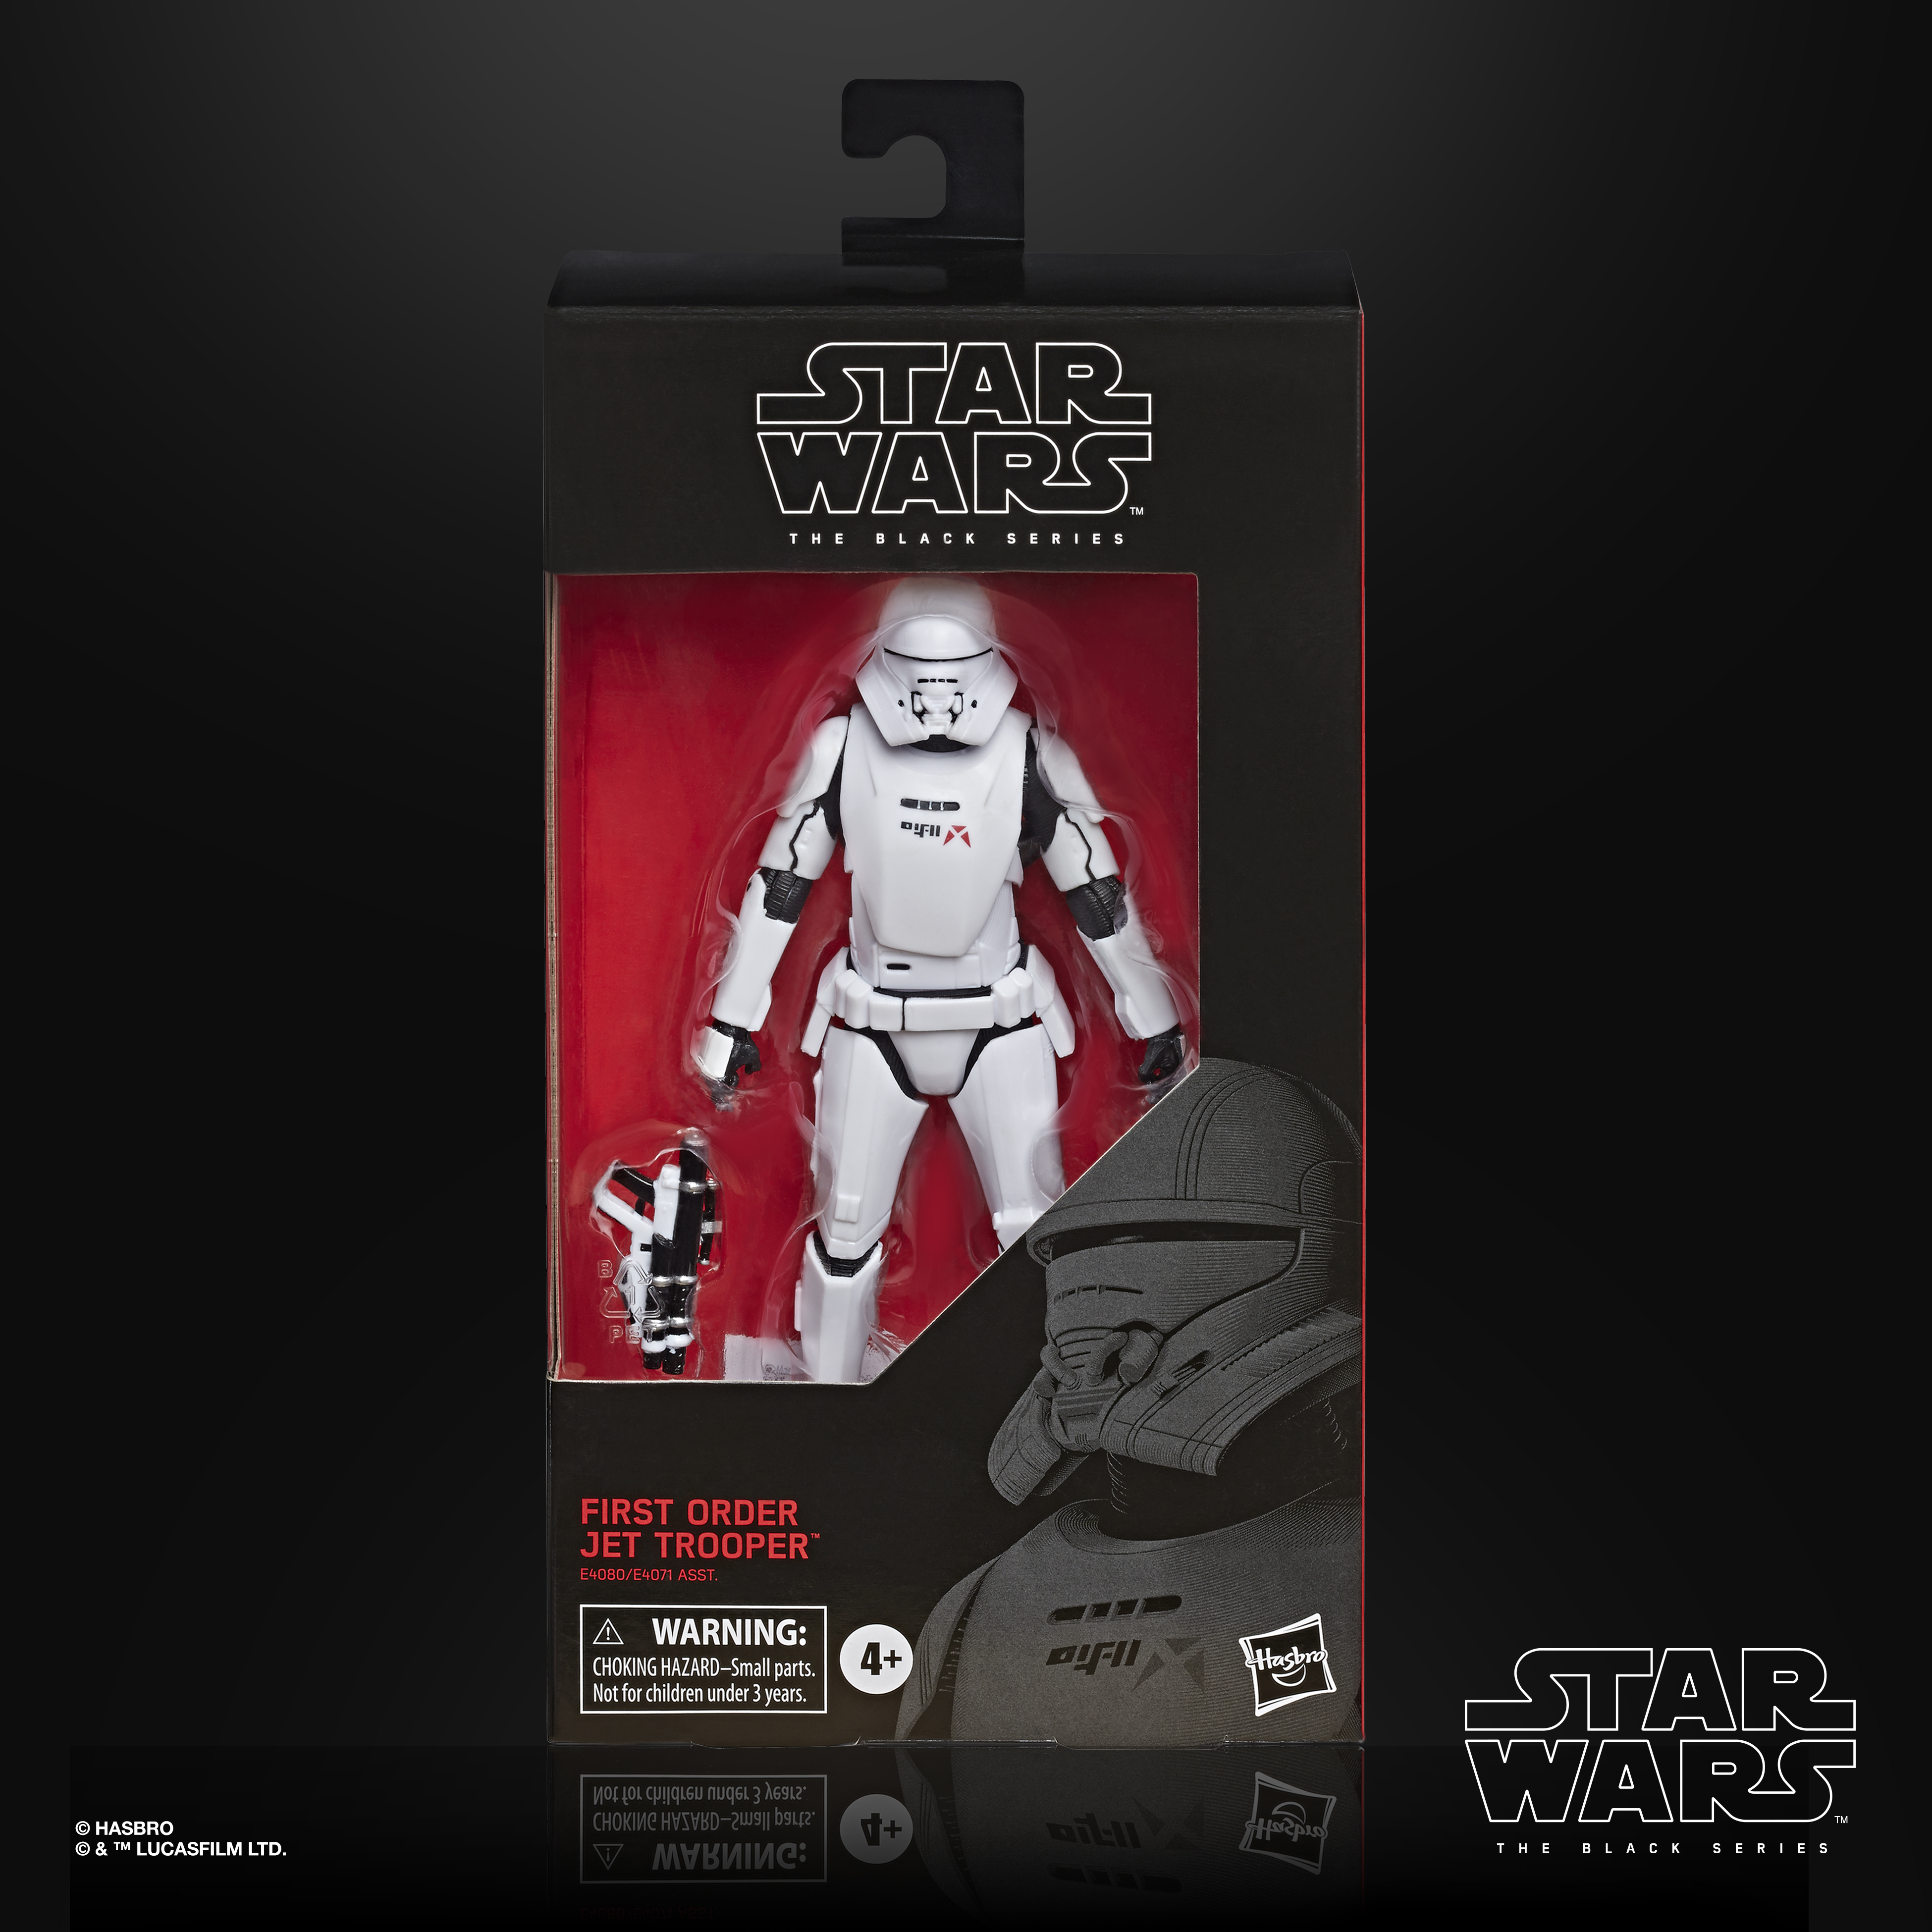 STAR WARS THE BLACK SERIES FIRST ORDER JET TROOPER